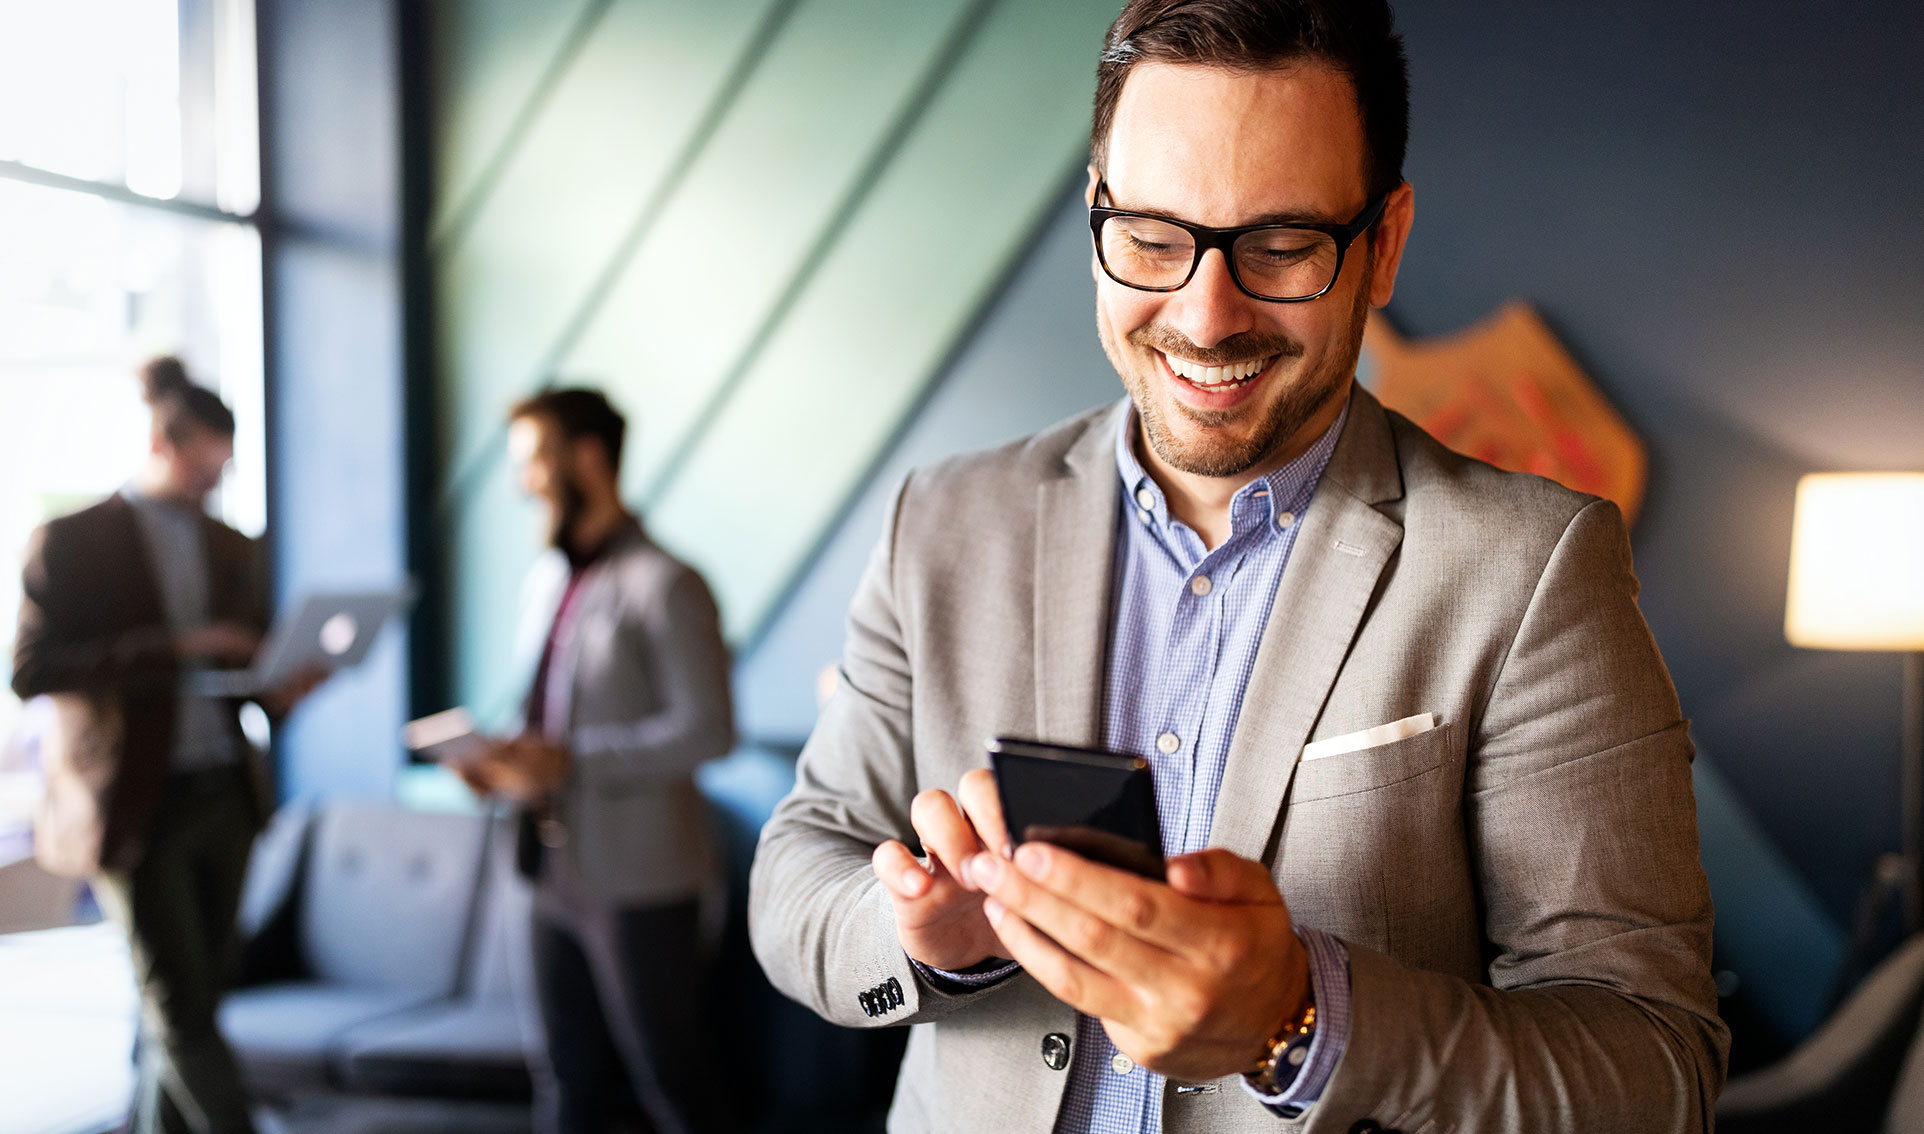 Man smiling as he looks at phone